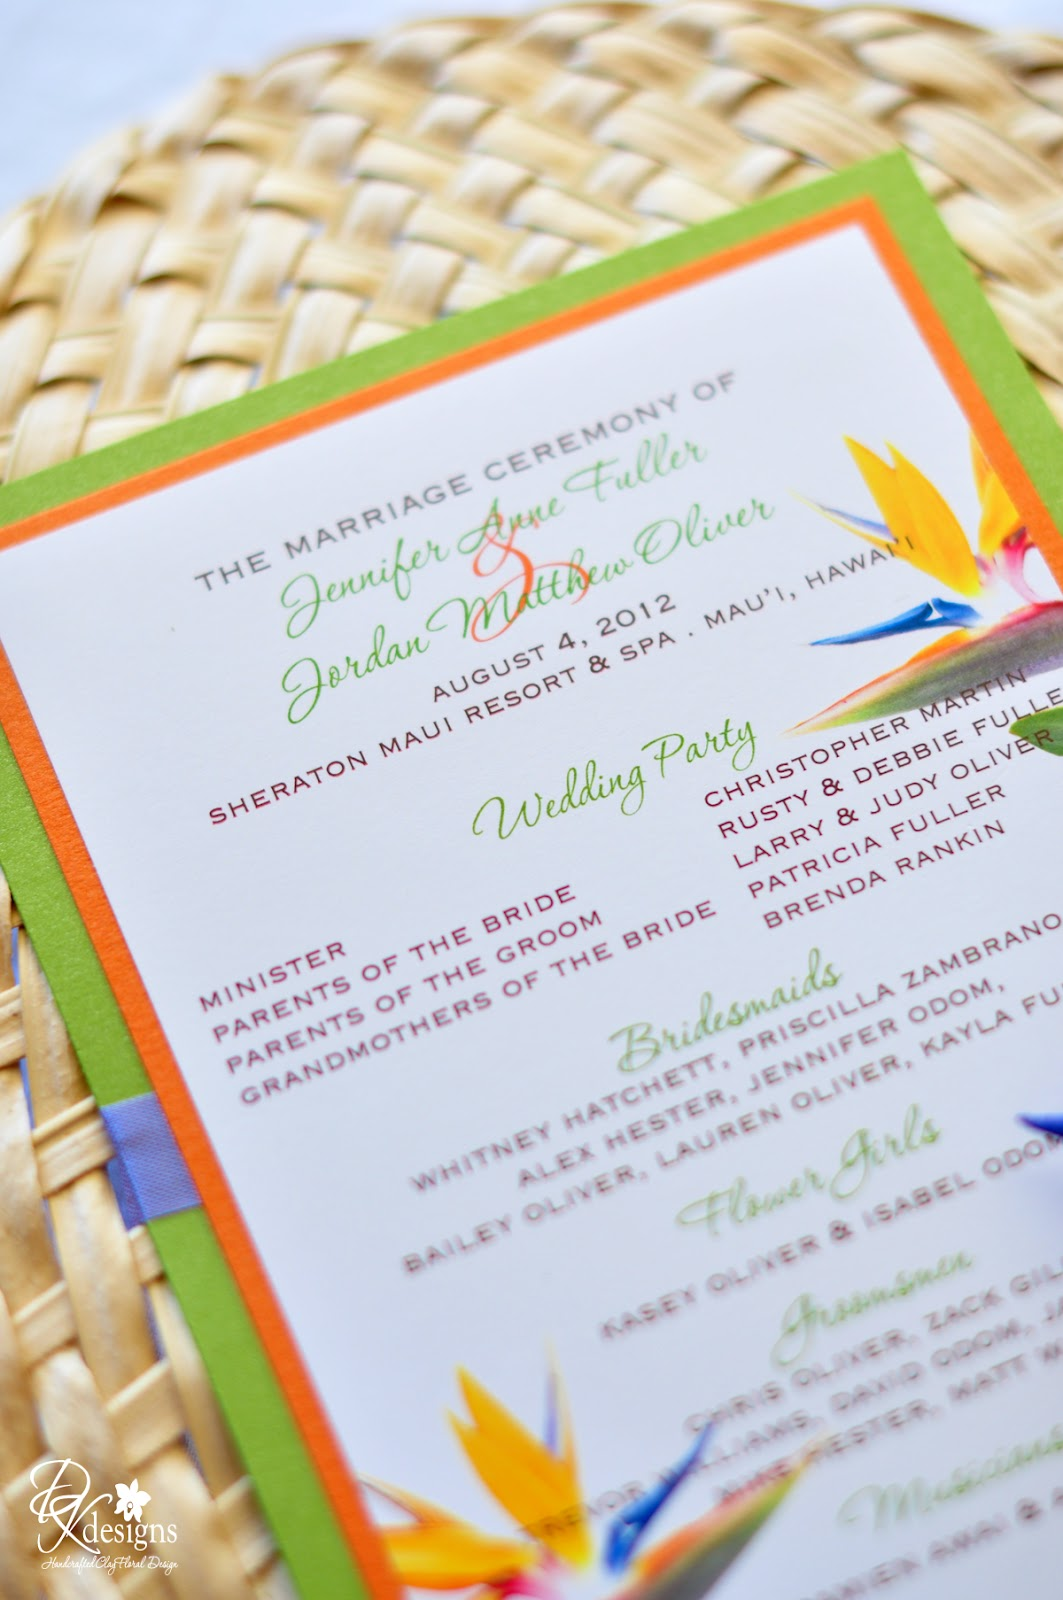 Bird of Paradise Themed Wedding - DK Designs